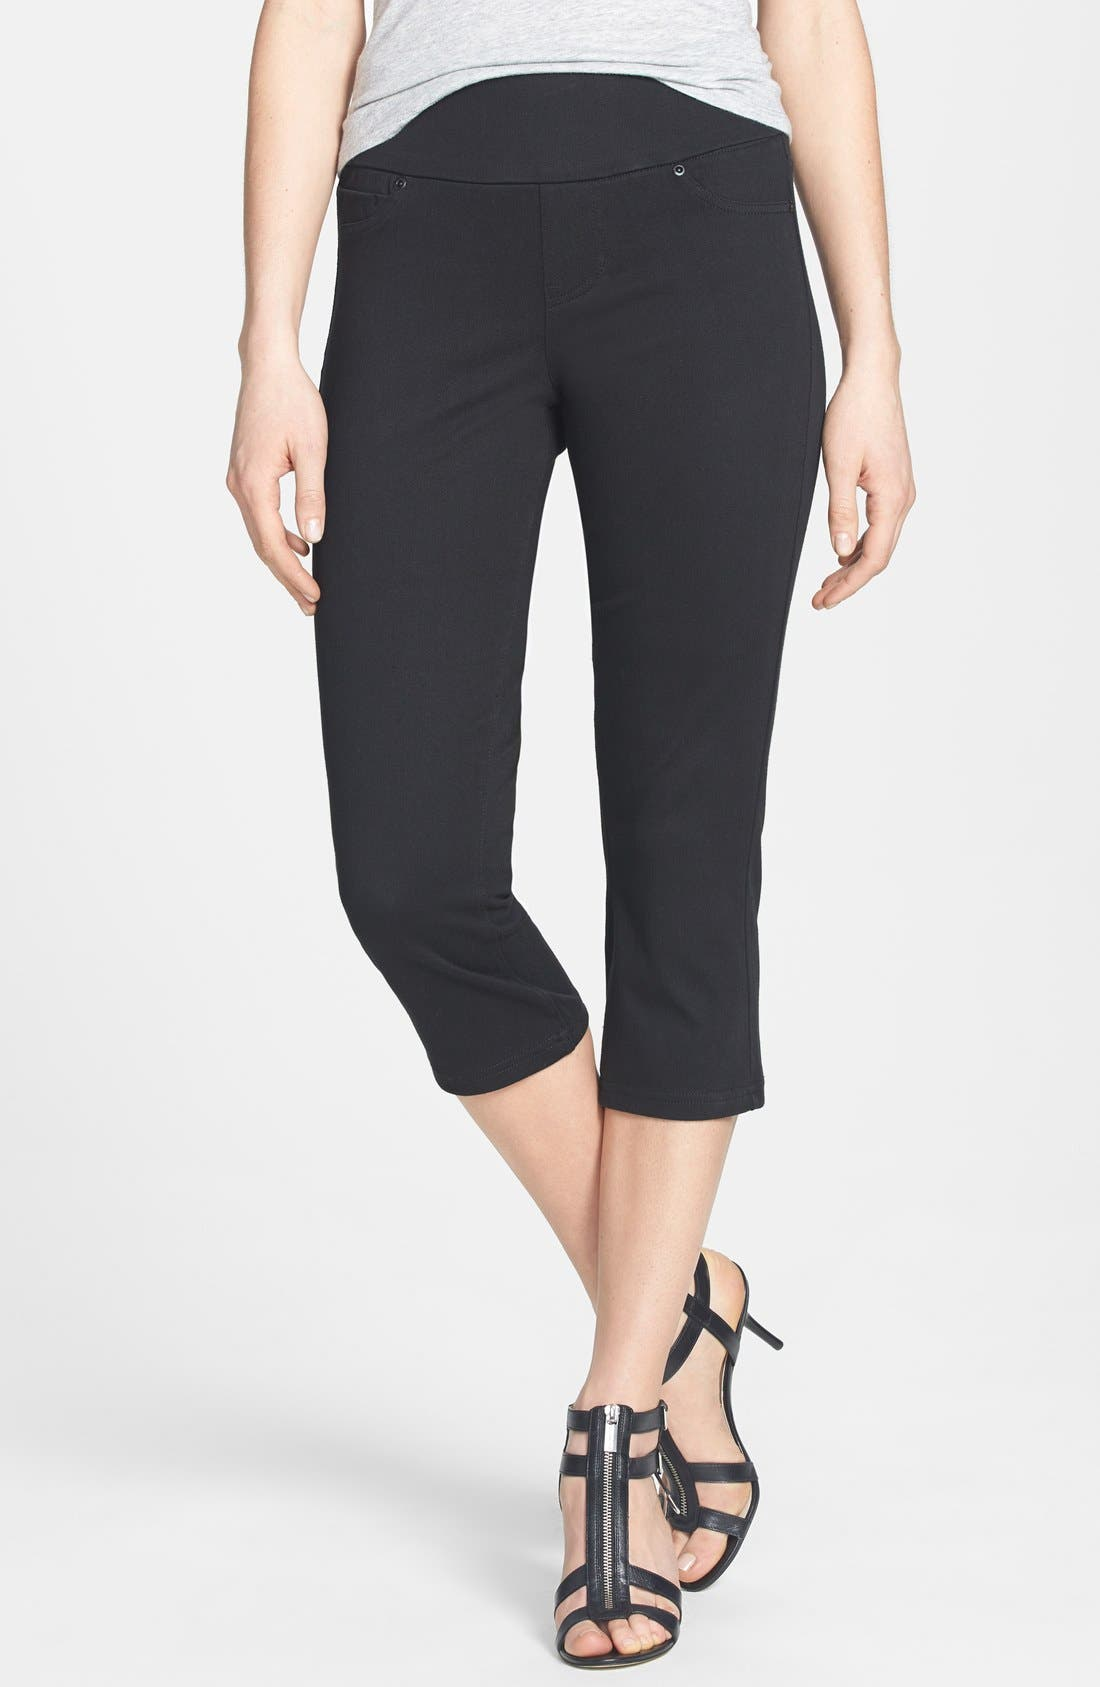 Main Image - Liverpool Jeans Company 'Sienna' Stretch Twill Capri Leggings